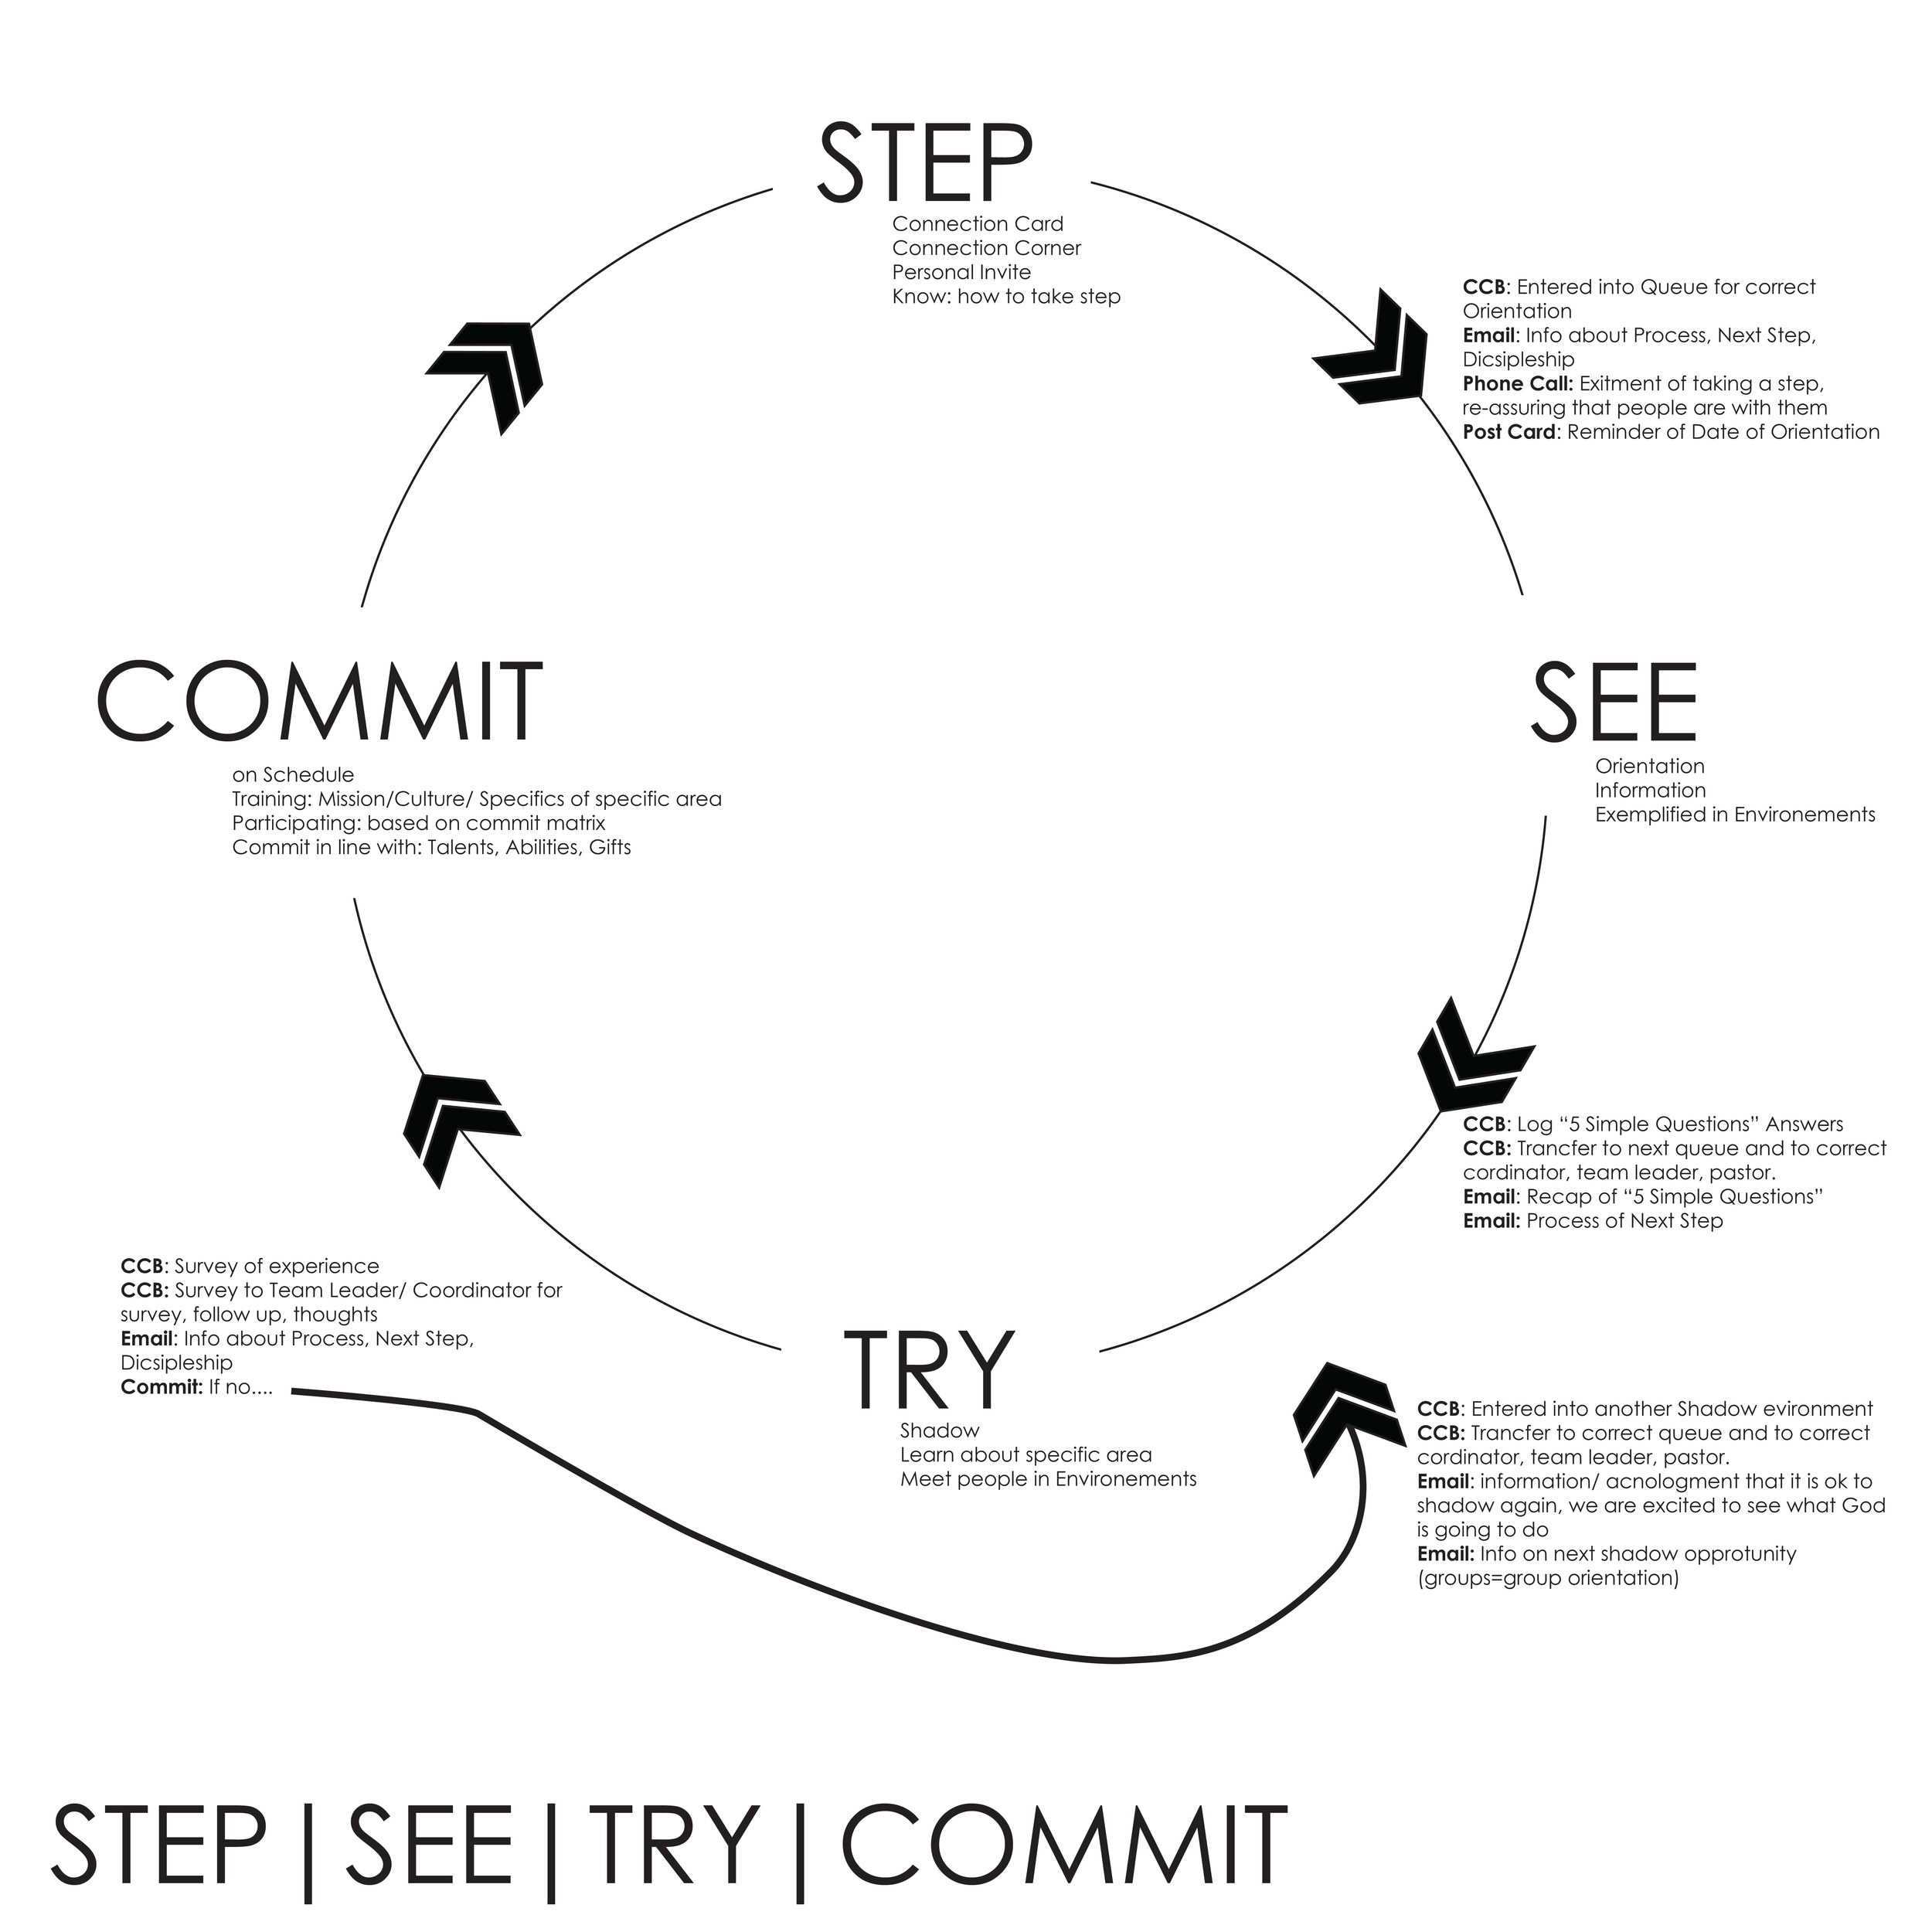 How to Take steps of Faith @ RCVA - The process and steps that take some one through a step of faith.